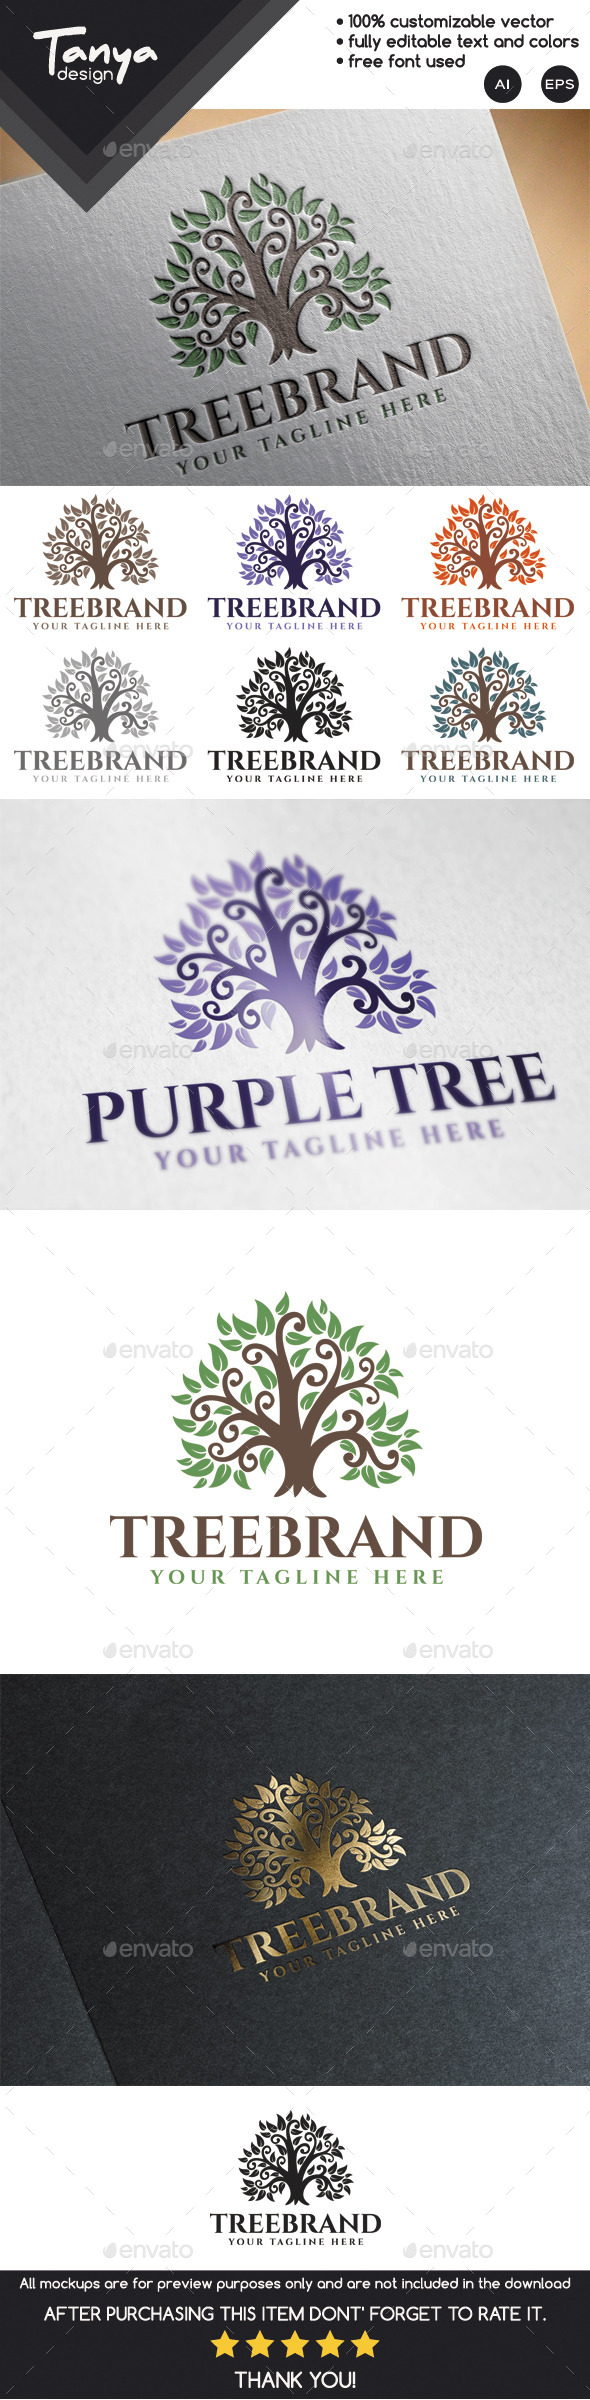 GraphicRiver Tree Brand Logo Template 10020521